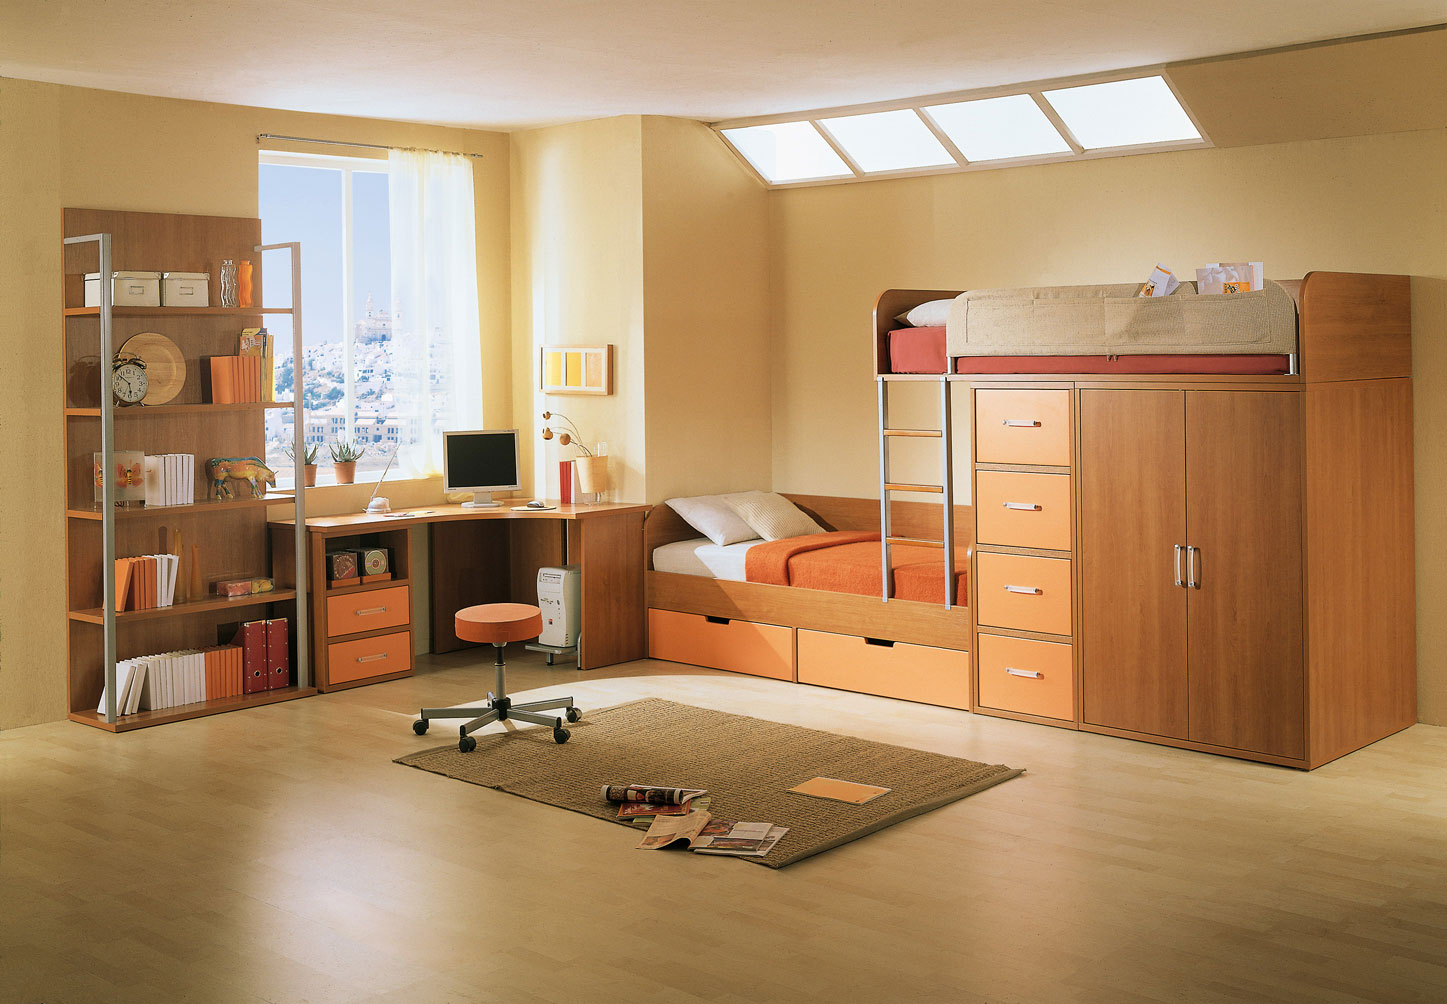 memilih desain tempat tidur tingkat 11086 | kids bedroom enchanting wood level beds with minimalist bookshelves also comfortable machintos computer table furniture amazing kids bedrooms and furniture design ideas